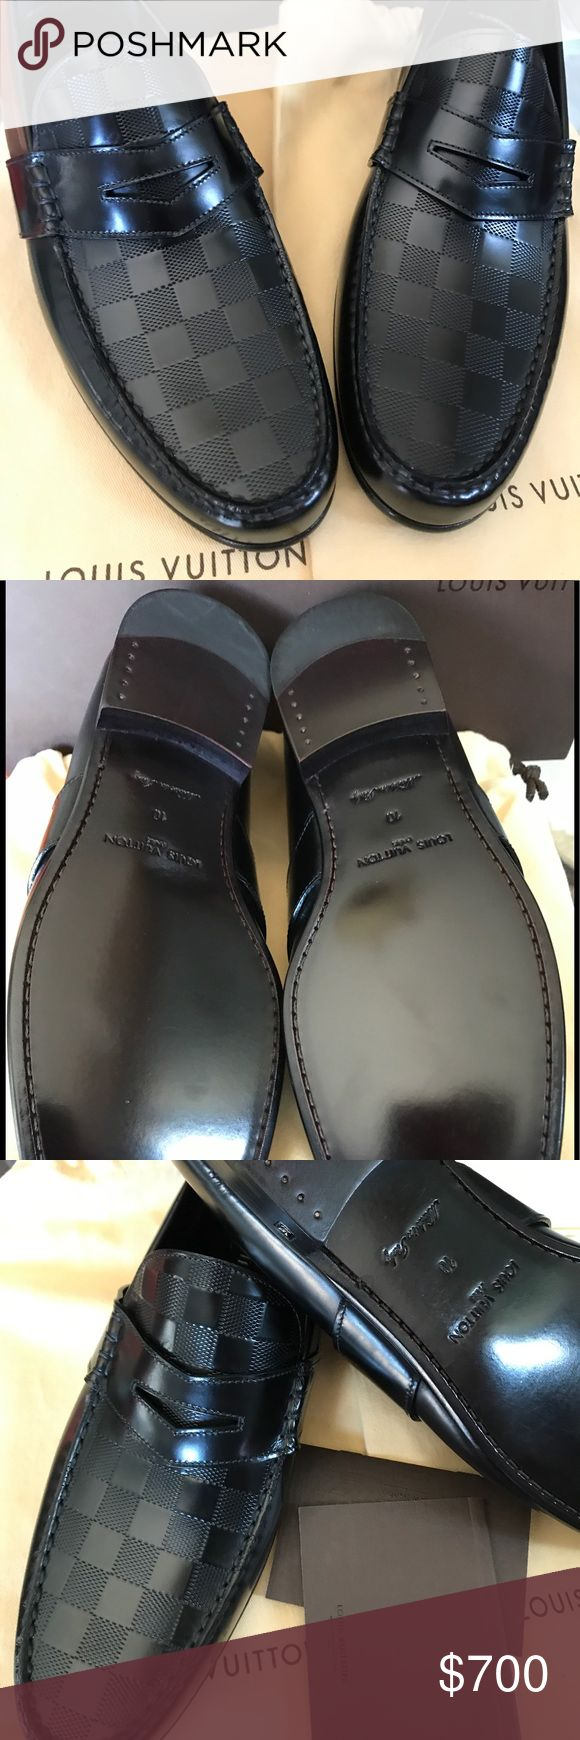 Louis Vuitton Men's Leather Damier Black Loafer Size US 10. Made in Italy. Sole attached to the upper with Blake stitching. Good as new. With original box and bag. Louis Vuitton Shoes Loafers & Slip-Ons